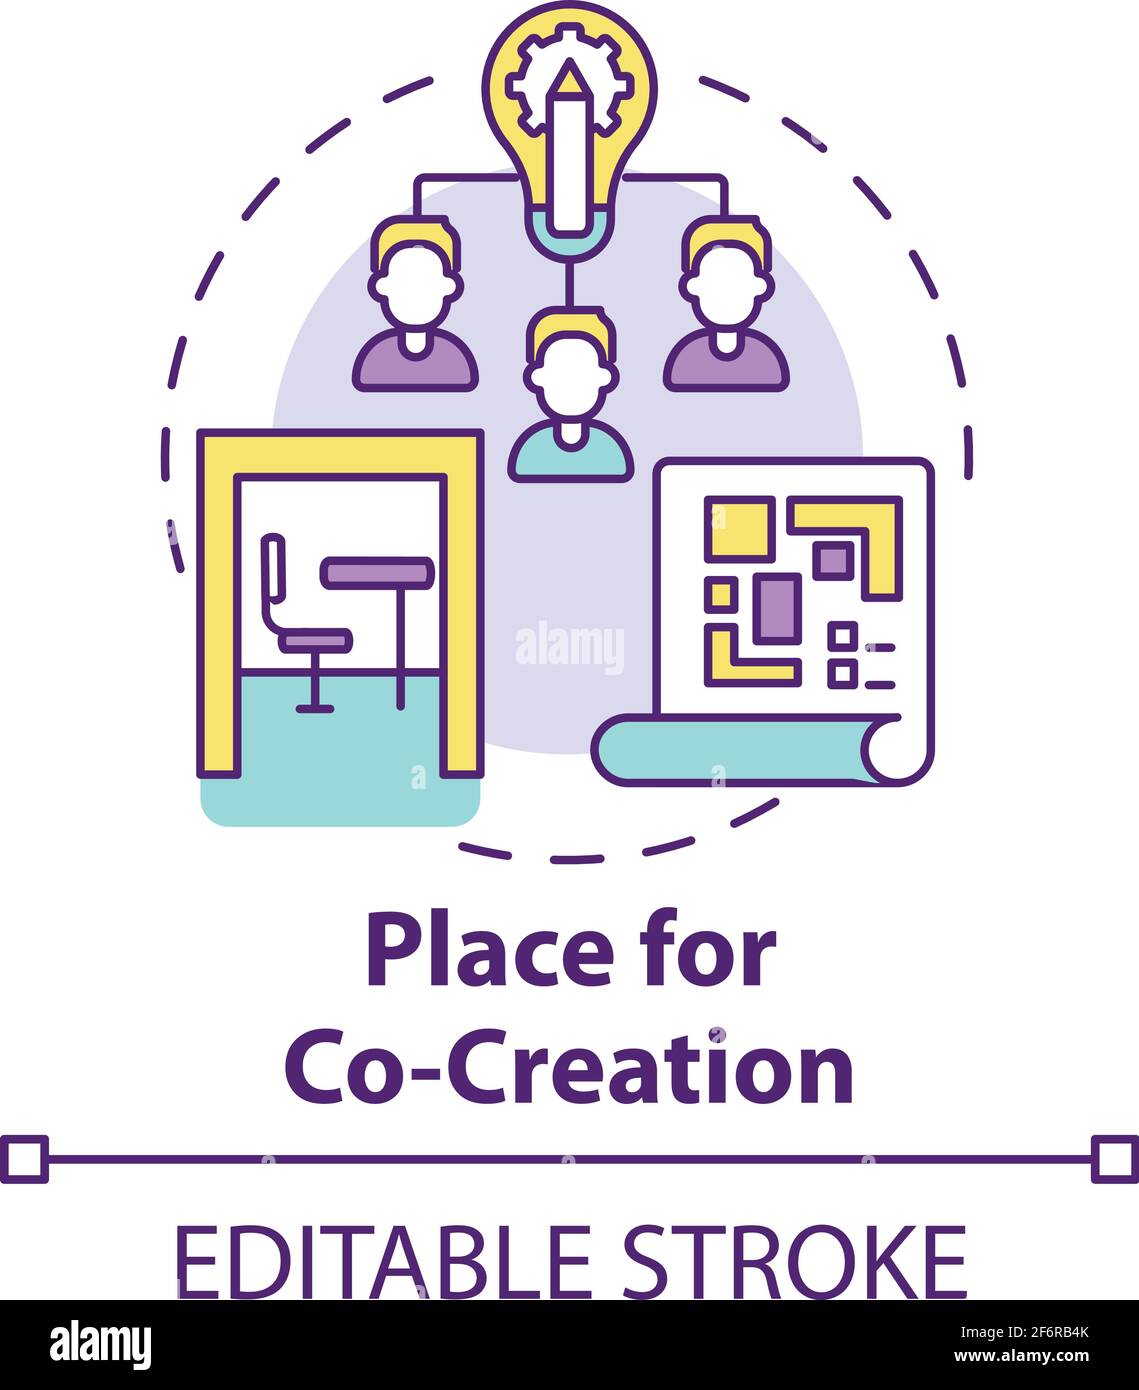 Place for co-creation concept icon Stock Vector